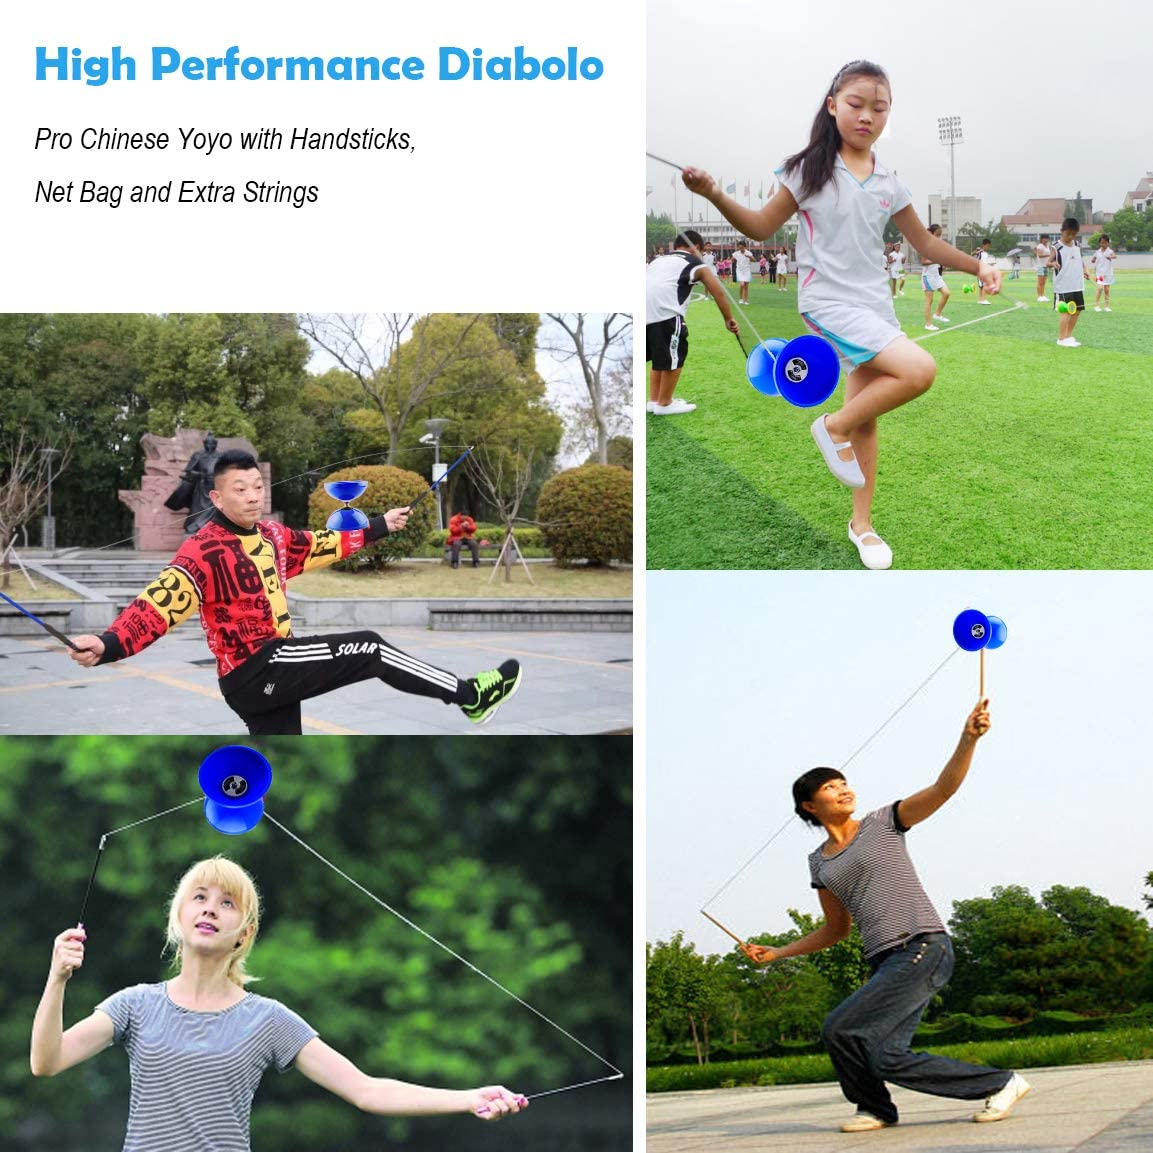 Flight High Performance Diabolo Red Pro Chinese Yoyo with Handsticks Net Bag an